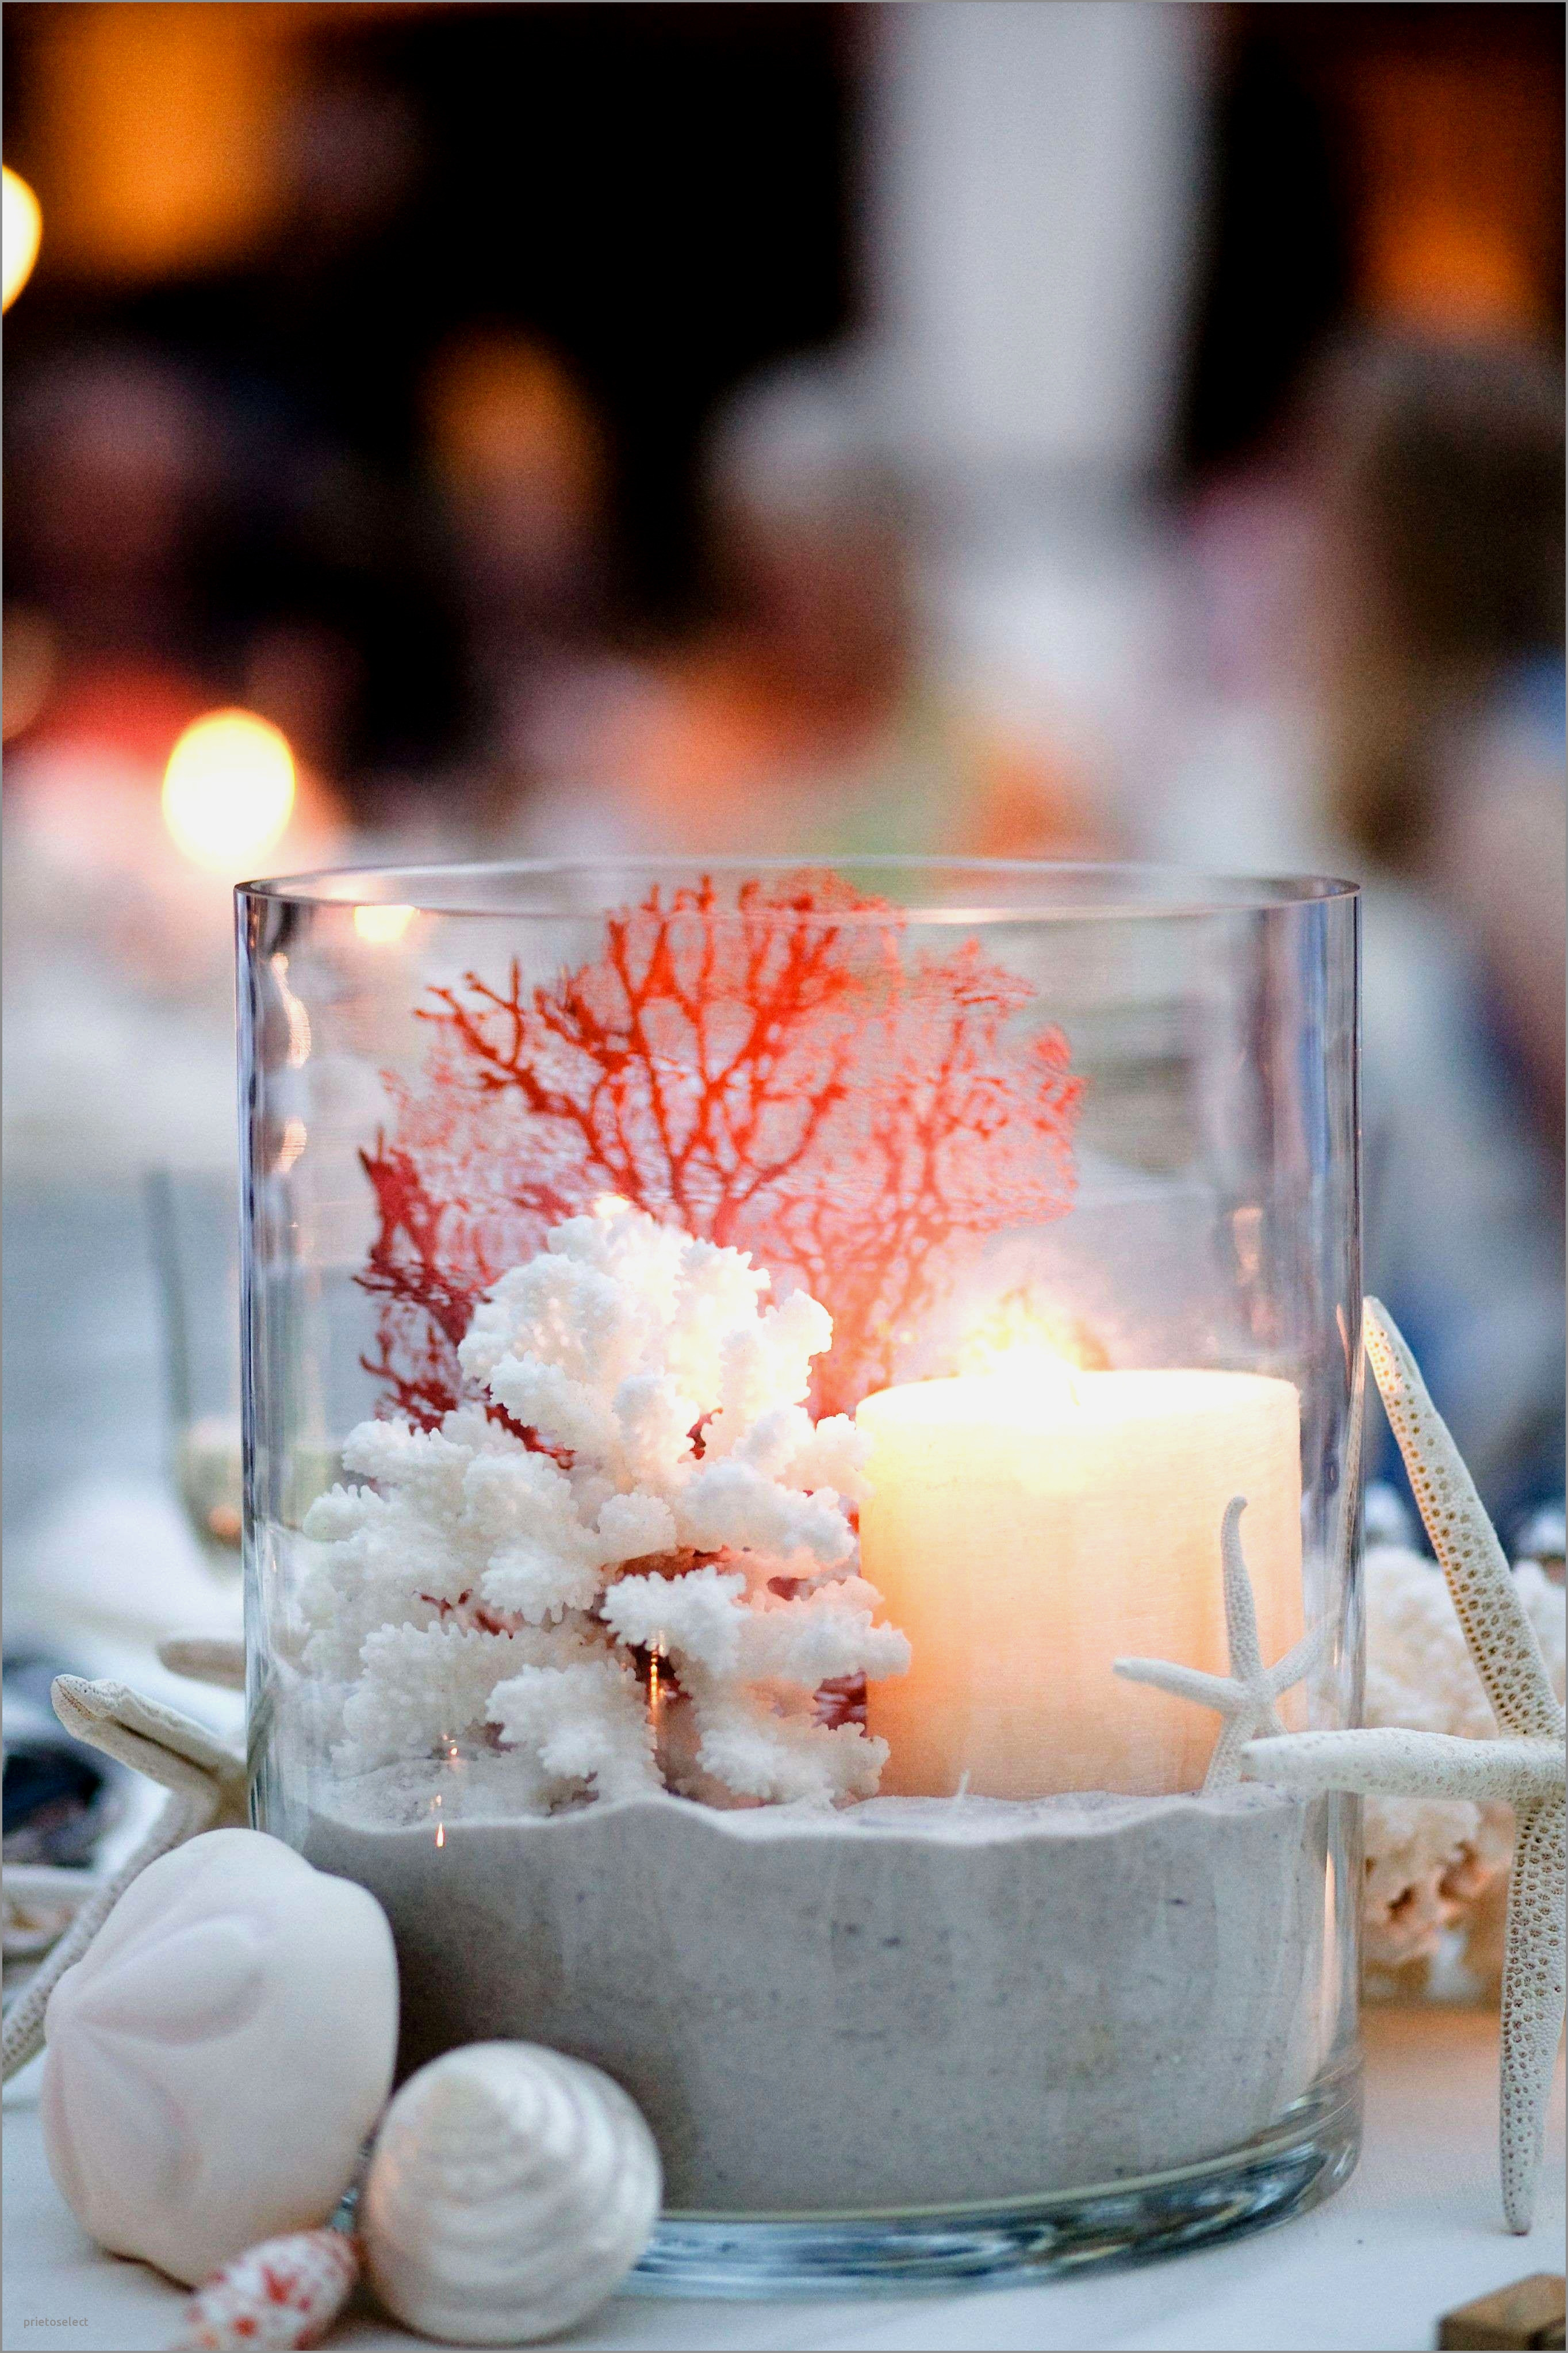 diy vase ideas of 75th birthday table decorations awesome a¢e†a 15 cheap and easy diy with 75th birthday table decorations inspirational 80th birthday party ideas elegant boat centerpieces 0d design ideas